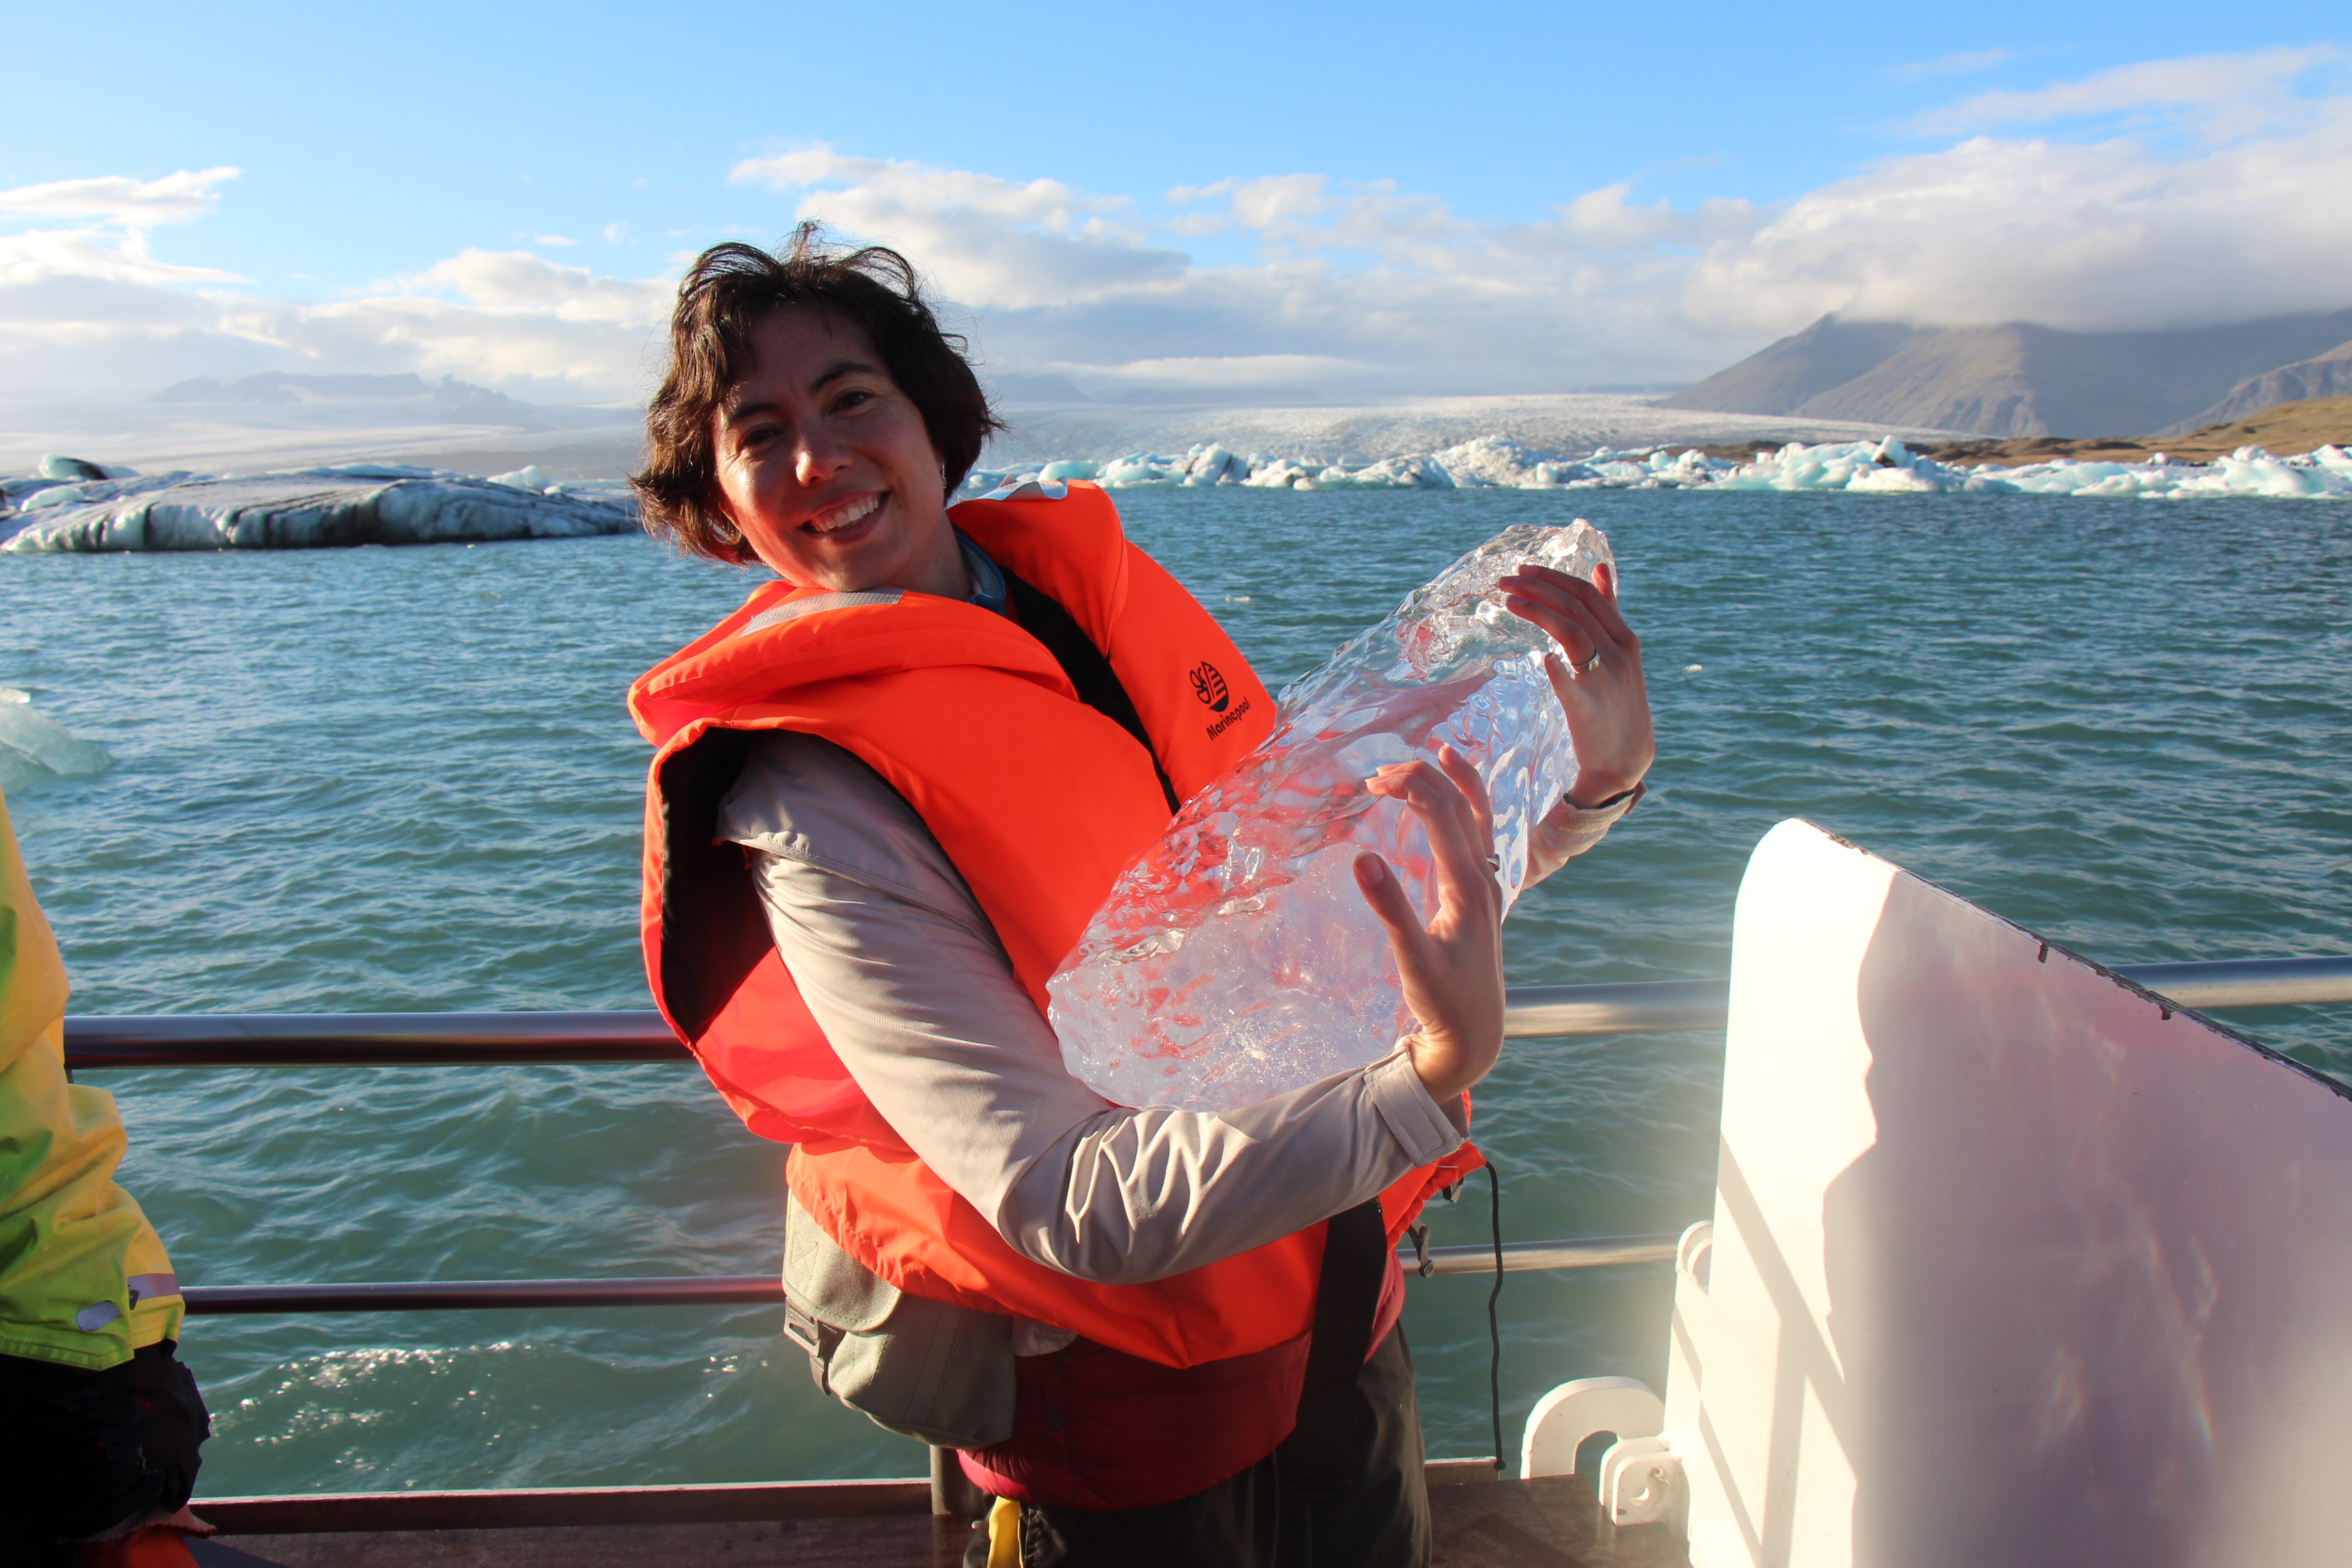 Smiling woman holding a block of ice on a boat.